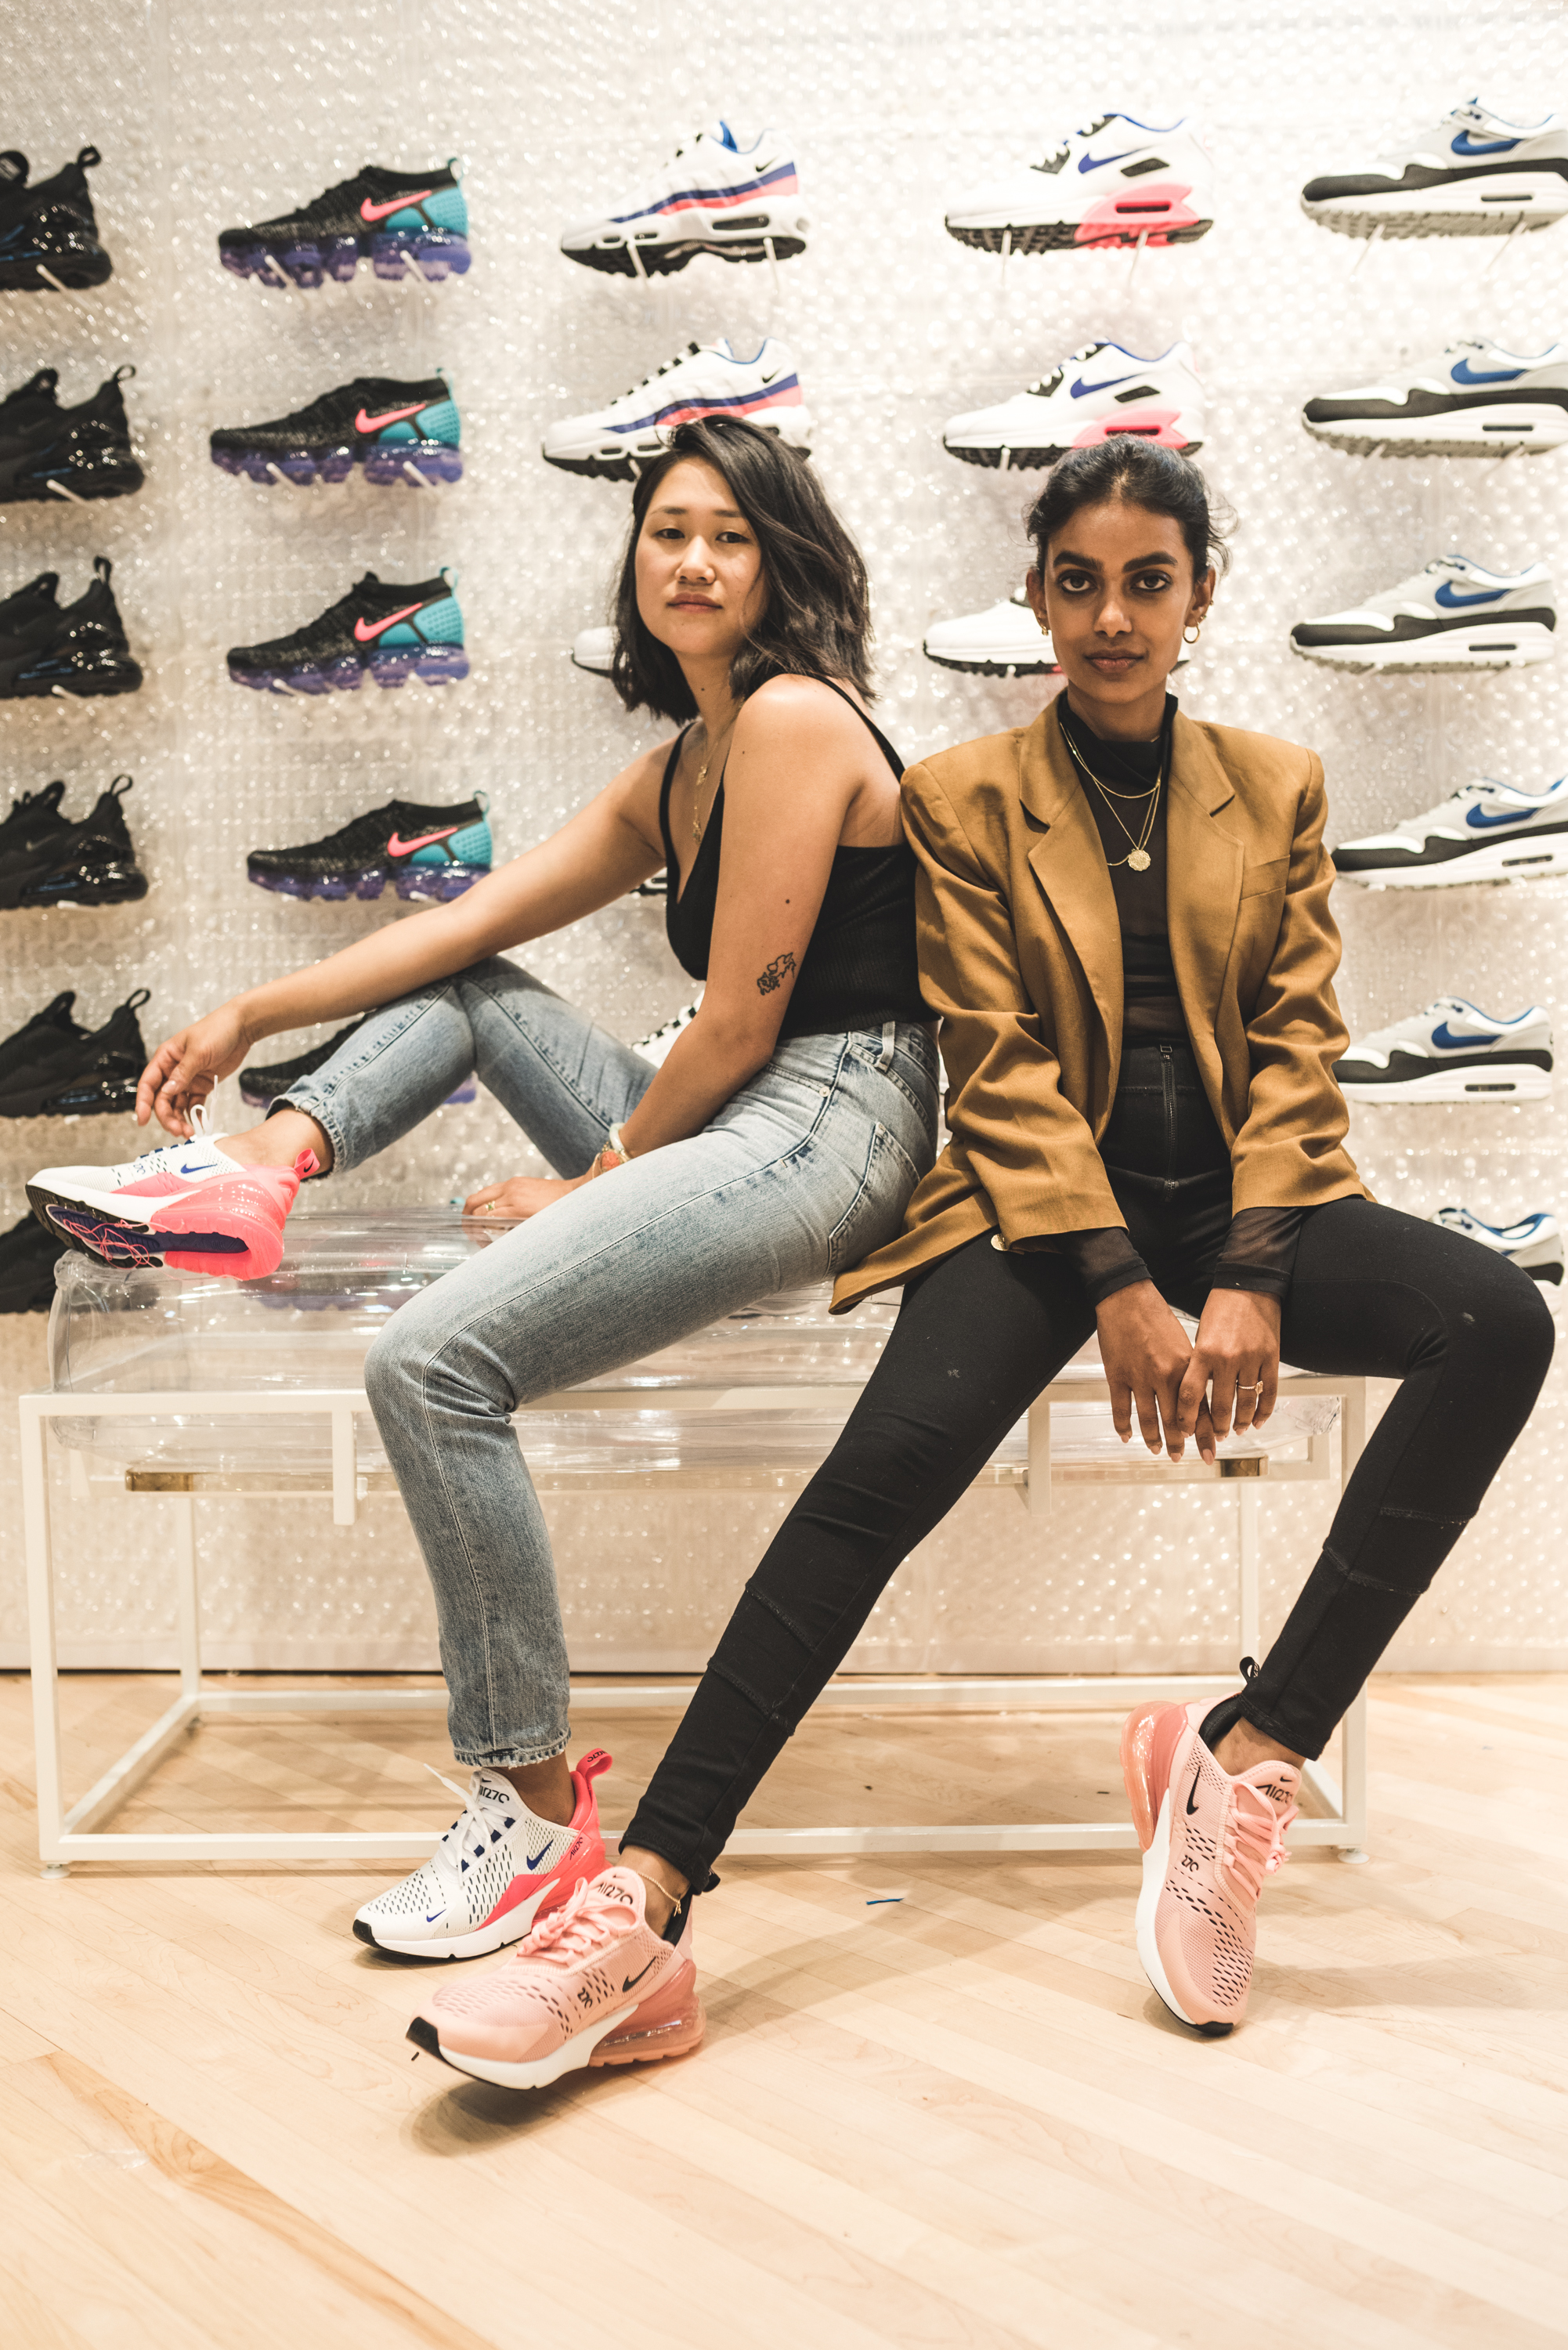 Stella and I taught a jewelry making workshop on Nike Air Day in our new  Air Max 270's.